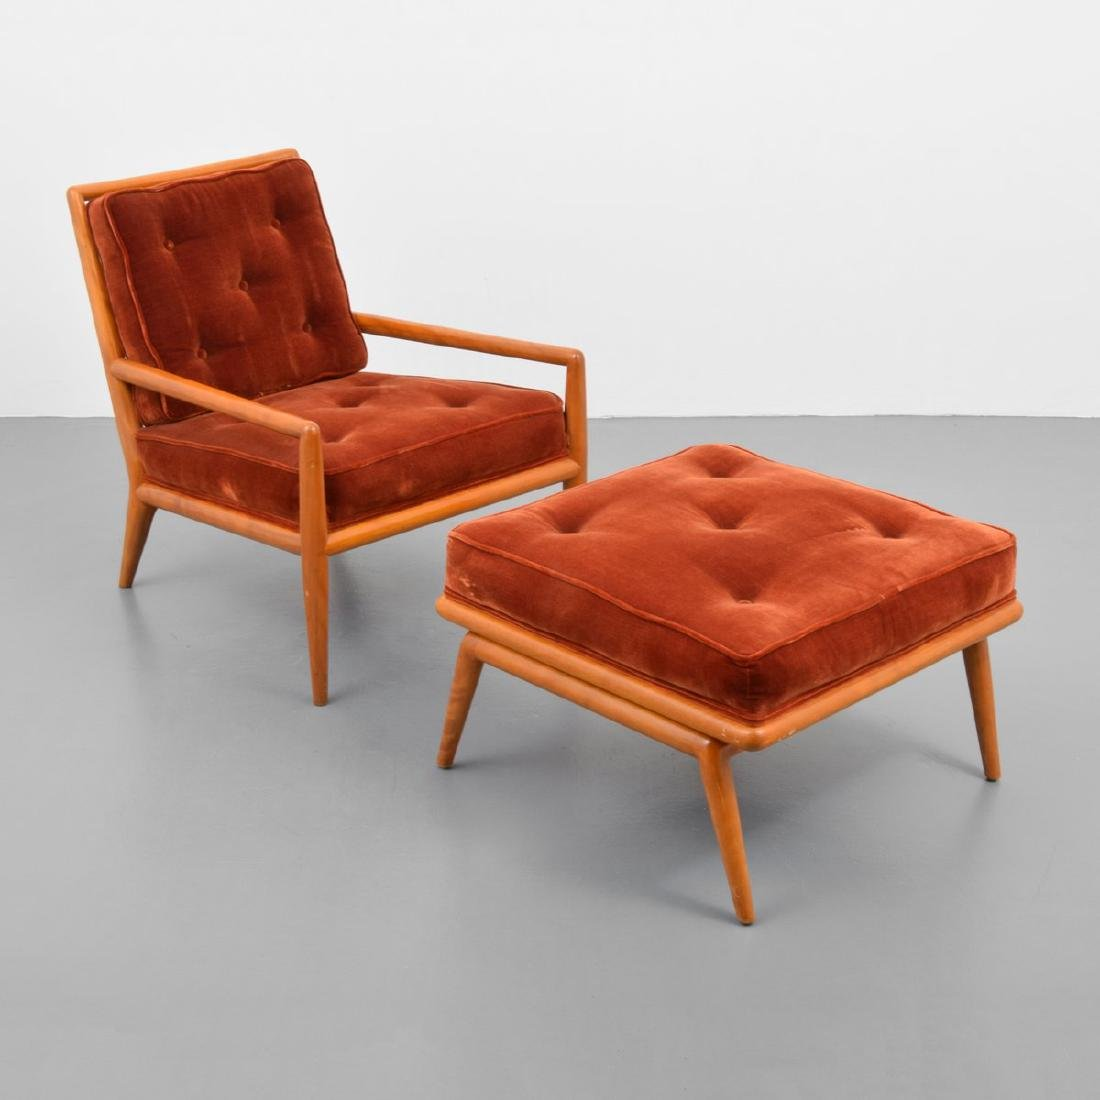 T.H. Robsjohn-Gibbings Lounge Chair & Ottoman